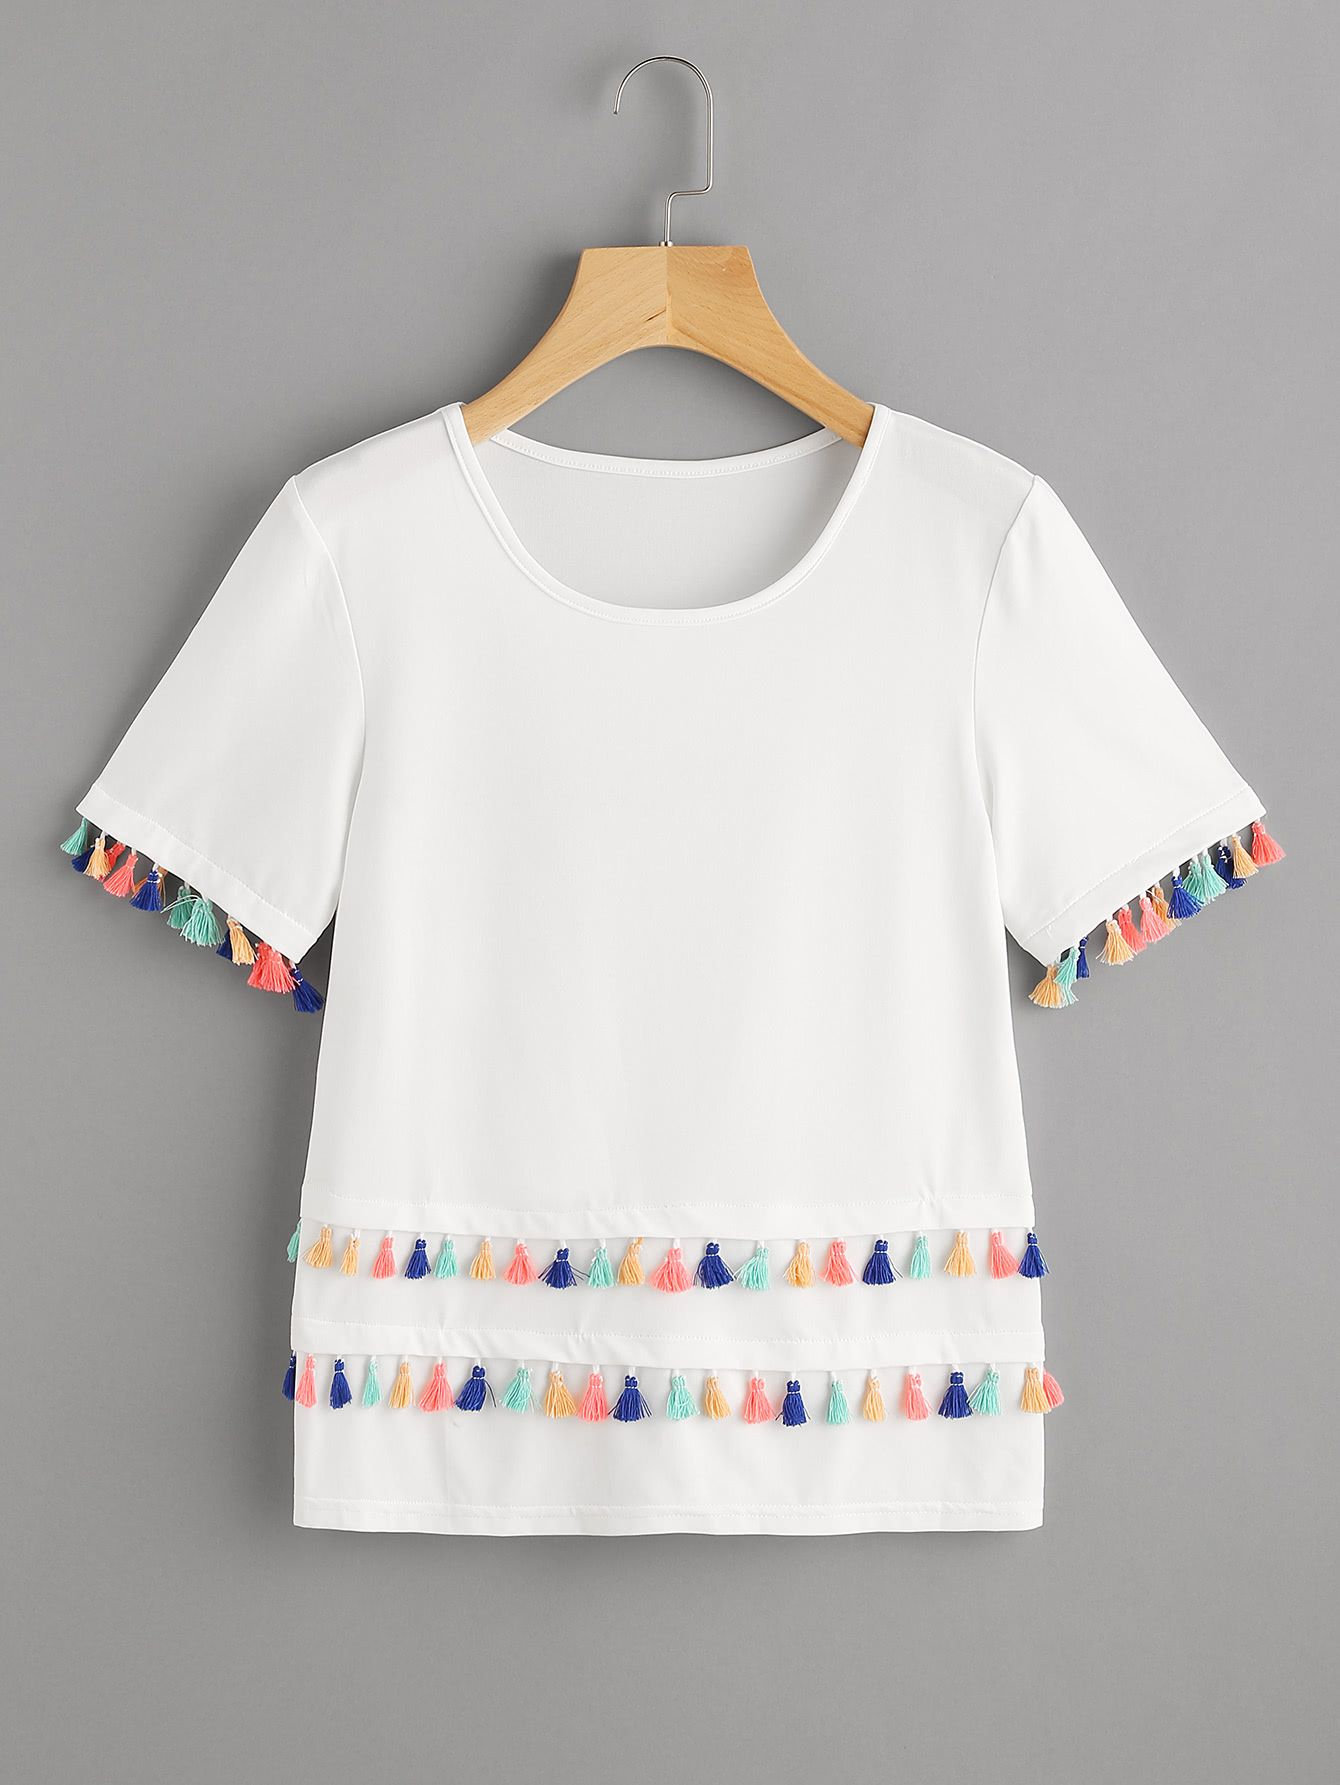 5972689858e59 Shop Tiered Tassel Trim T-shirt online. SheIn offers Tiered Tassel Trim  T-shirt   more to fit your fashionable needs.